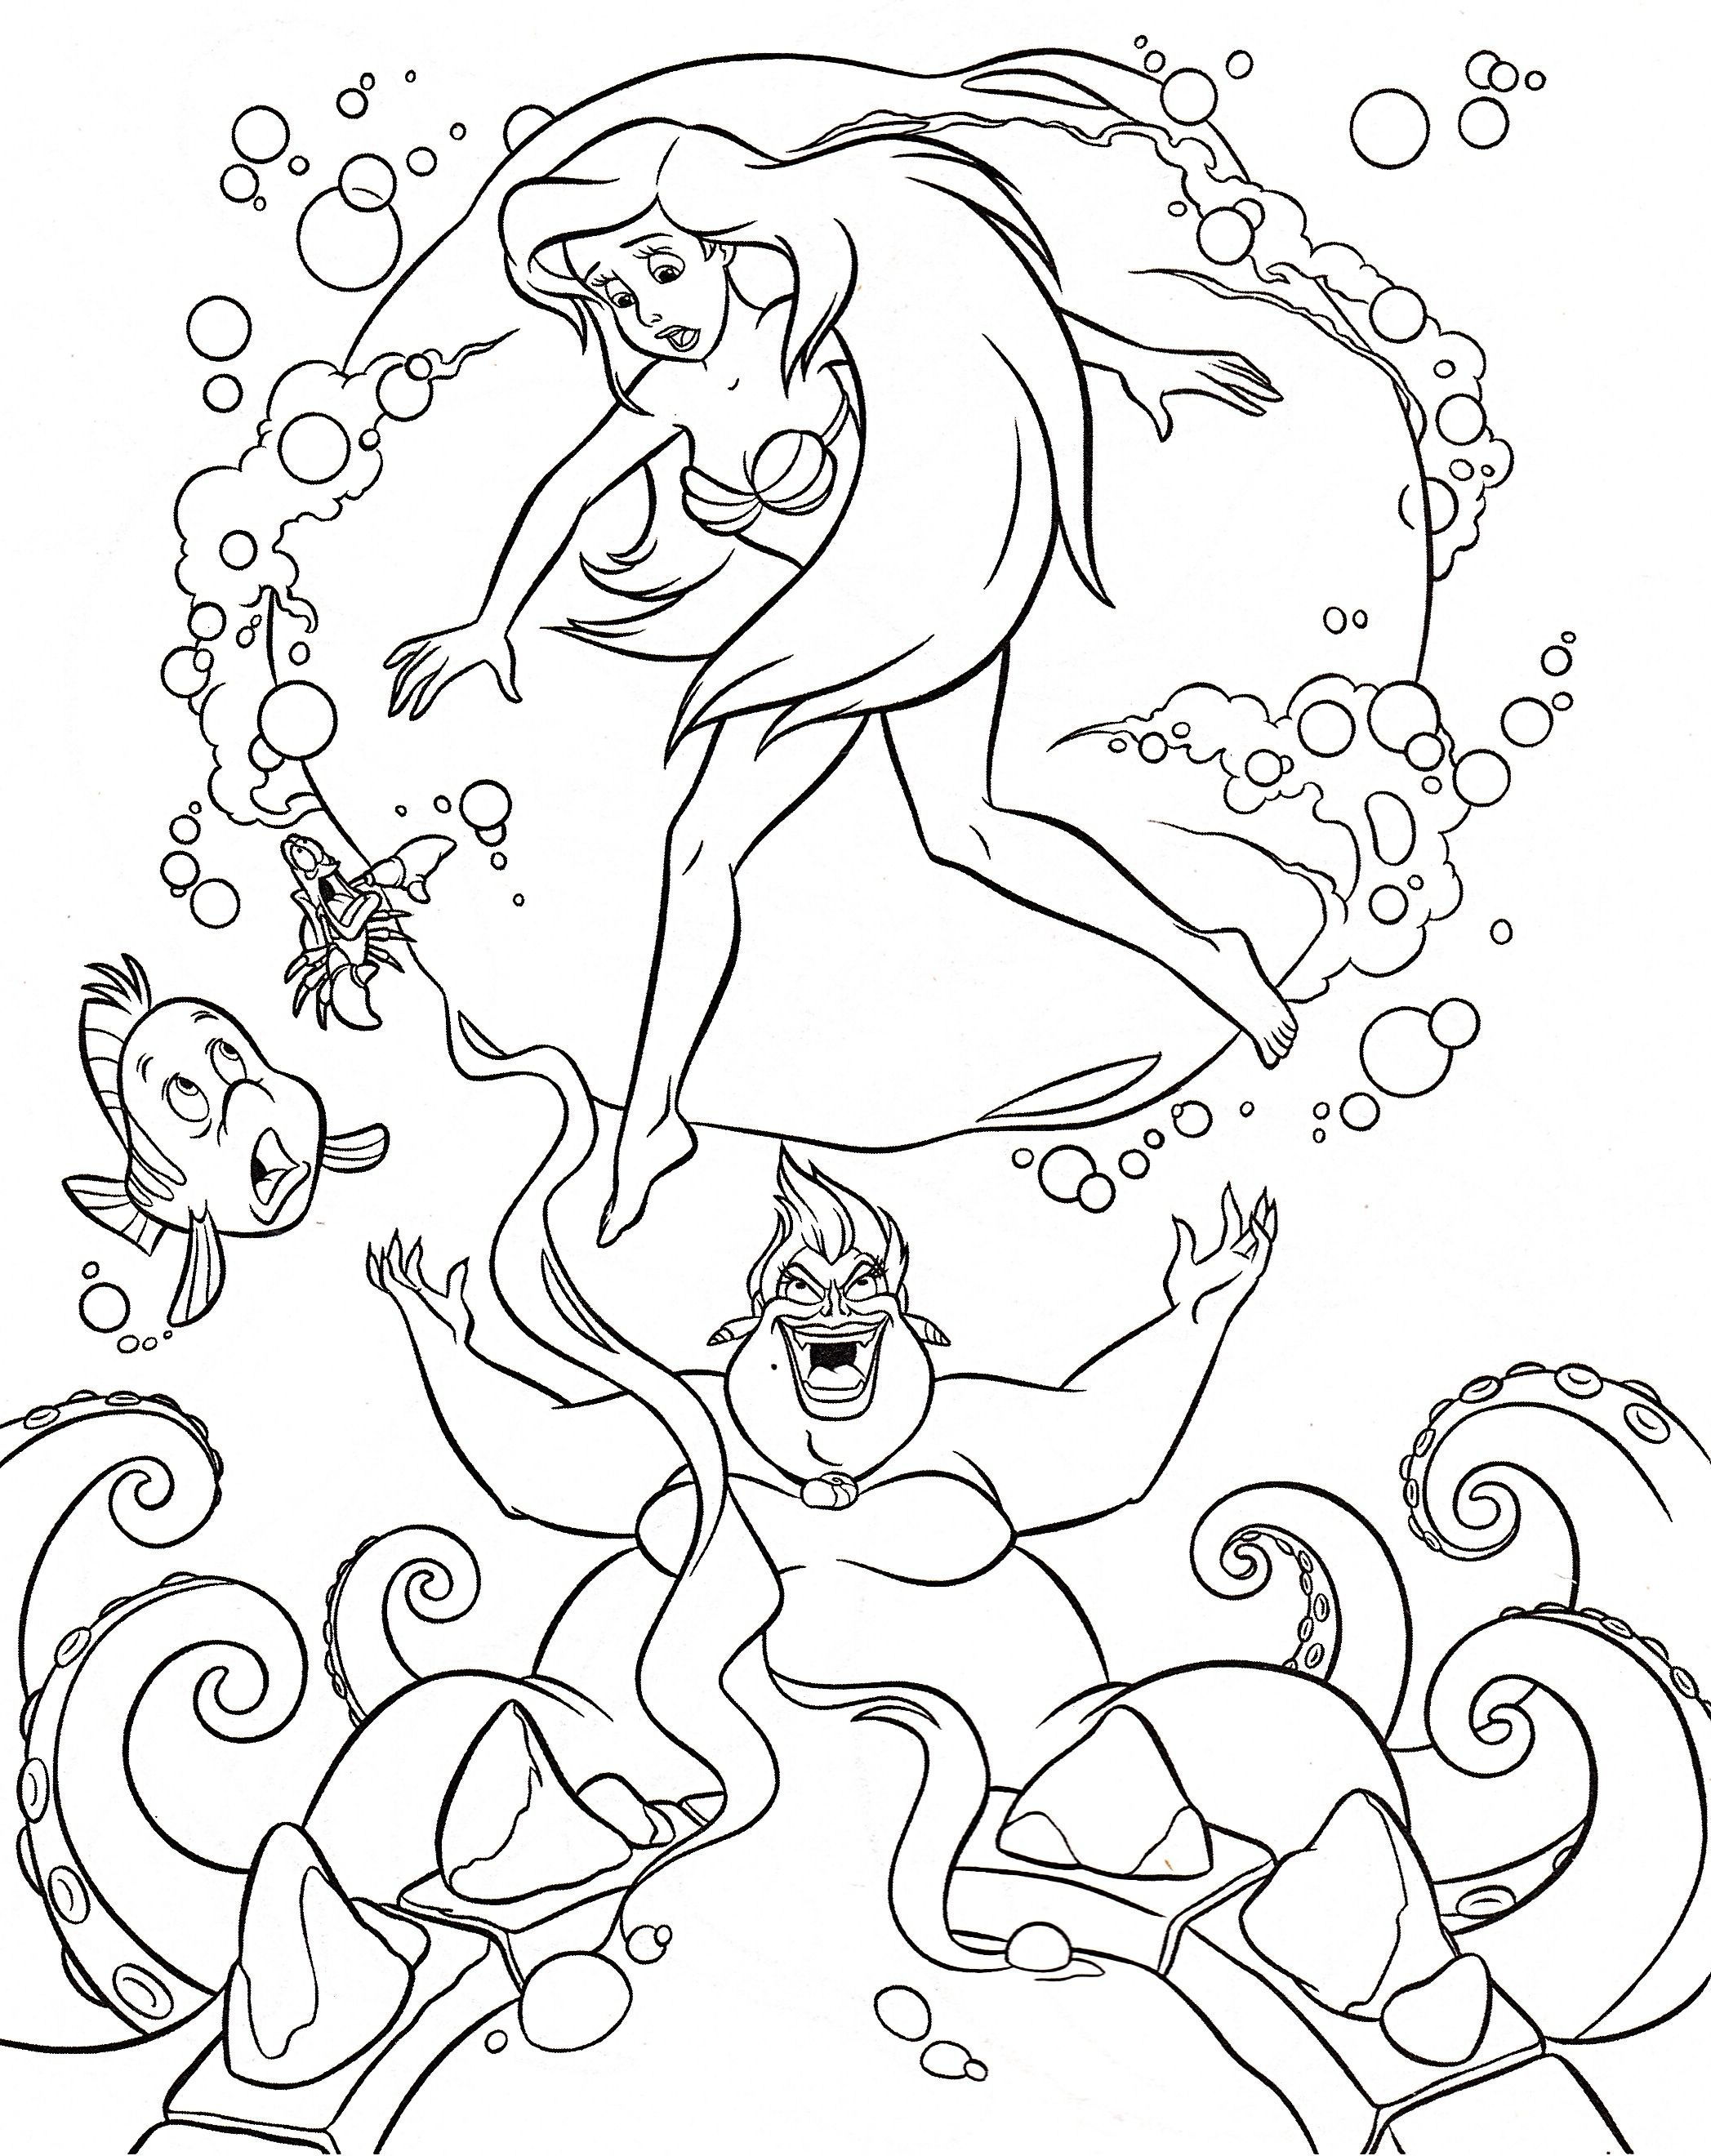 30 Coloring Pages For Free Online Ariel Coloring Pages Disney Coloring Pages Disney Princess Coloring Pages